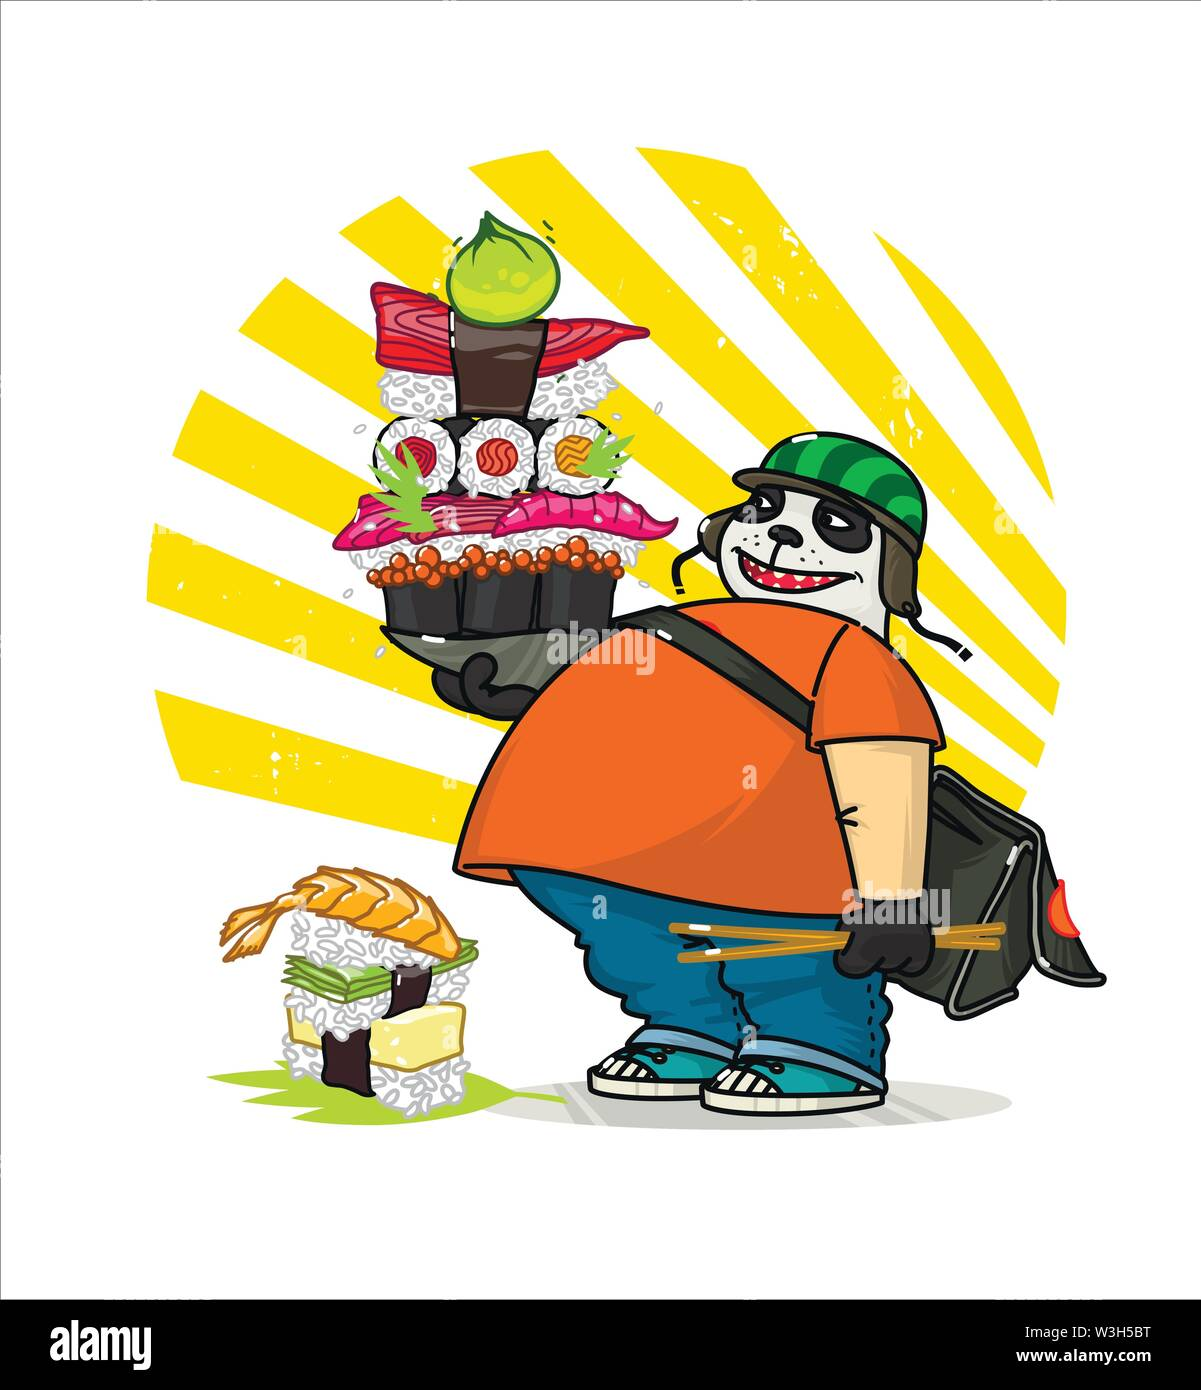 A cute cartoon panda delivers Asian food. Illustration of a courier panda delivering sushi, rolls.  The character is isolated on a white background. - Stock Image